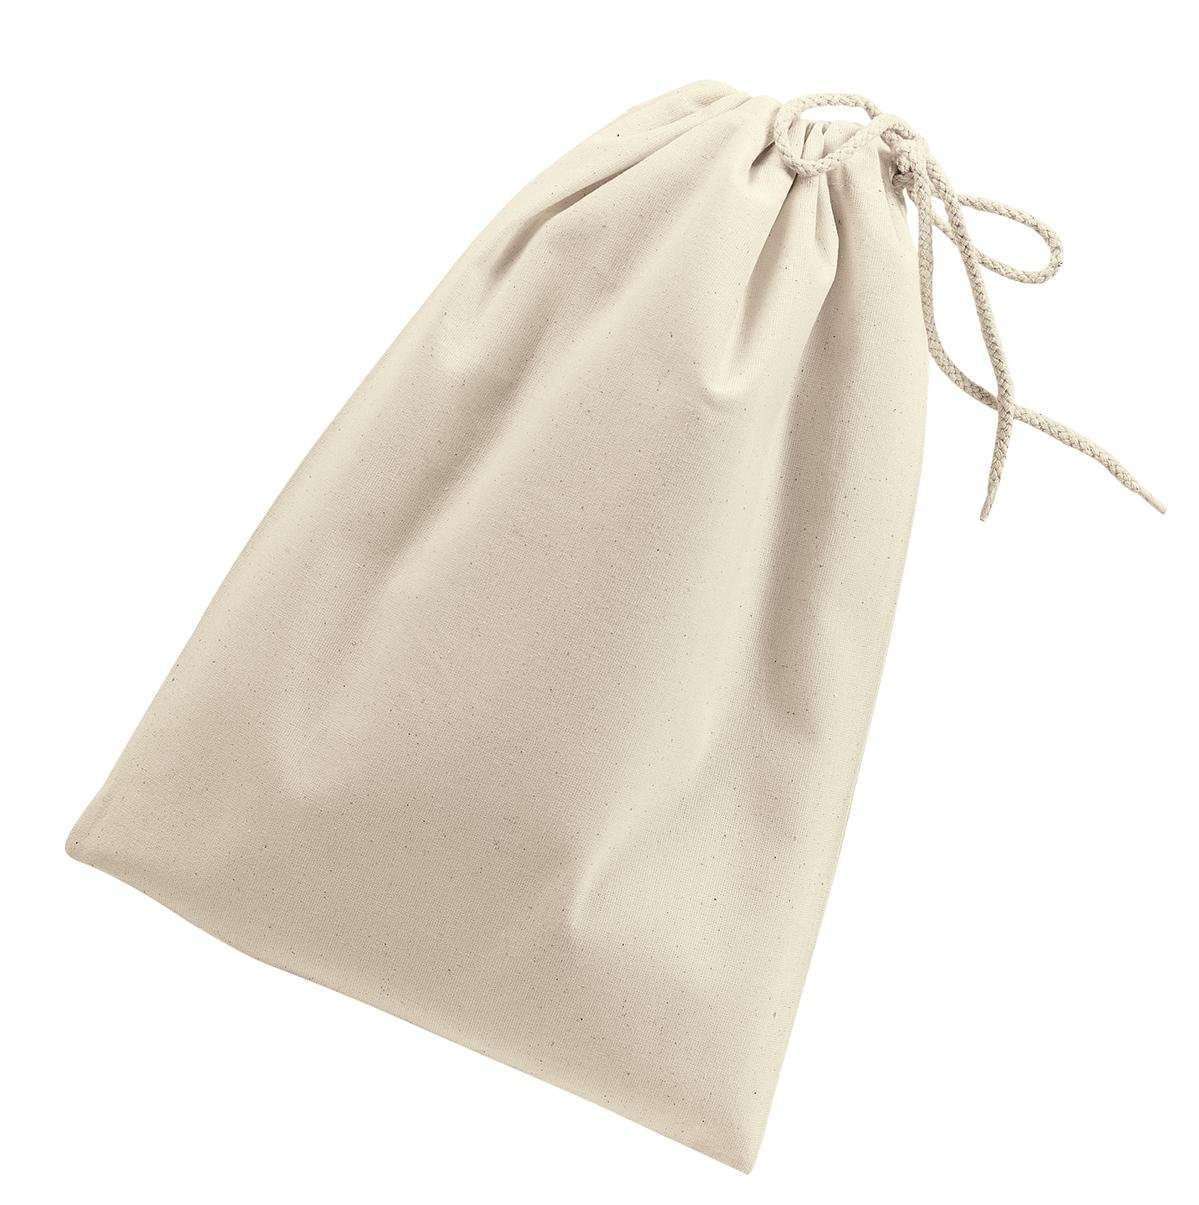 Qty of 3 - Cotton Shoe Bags in 3 Colors tm Joes USA